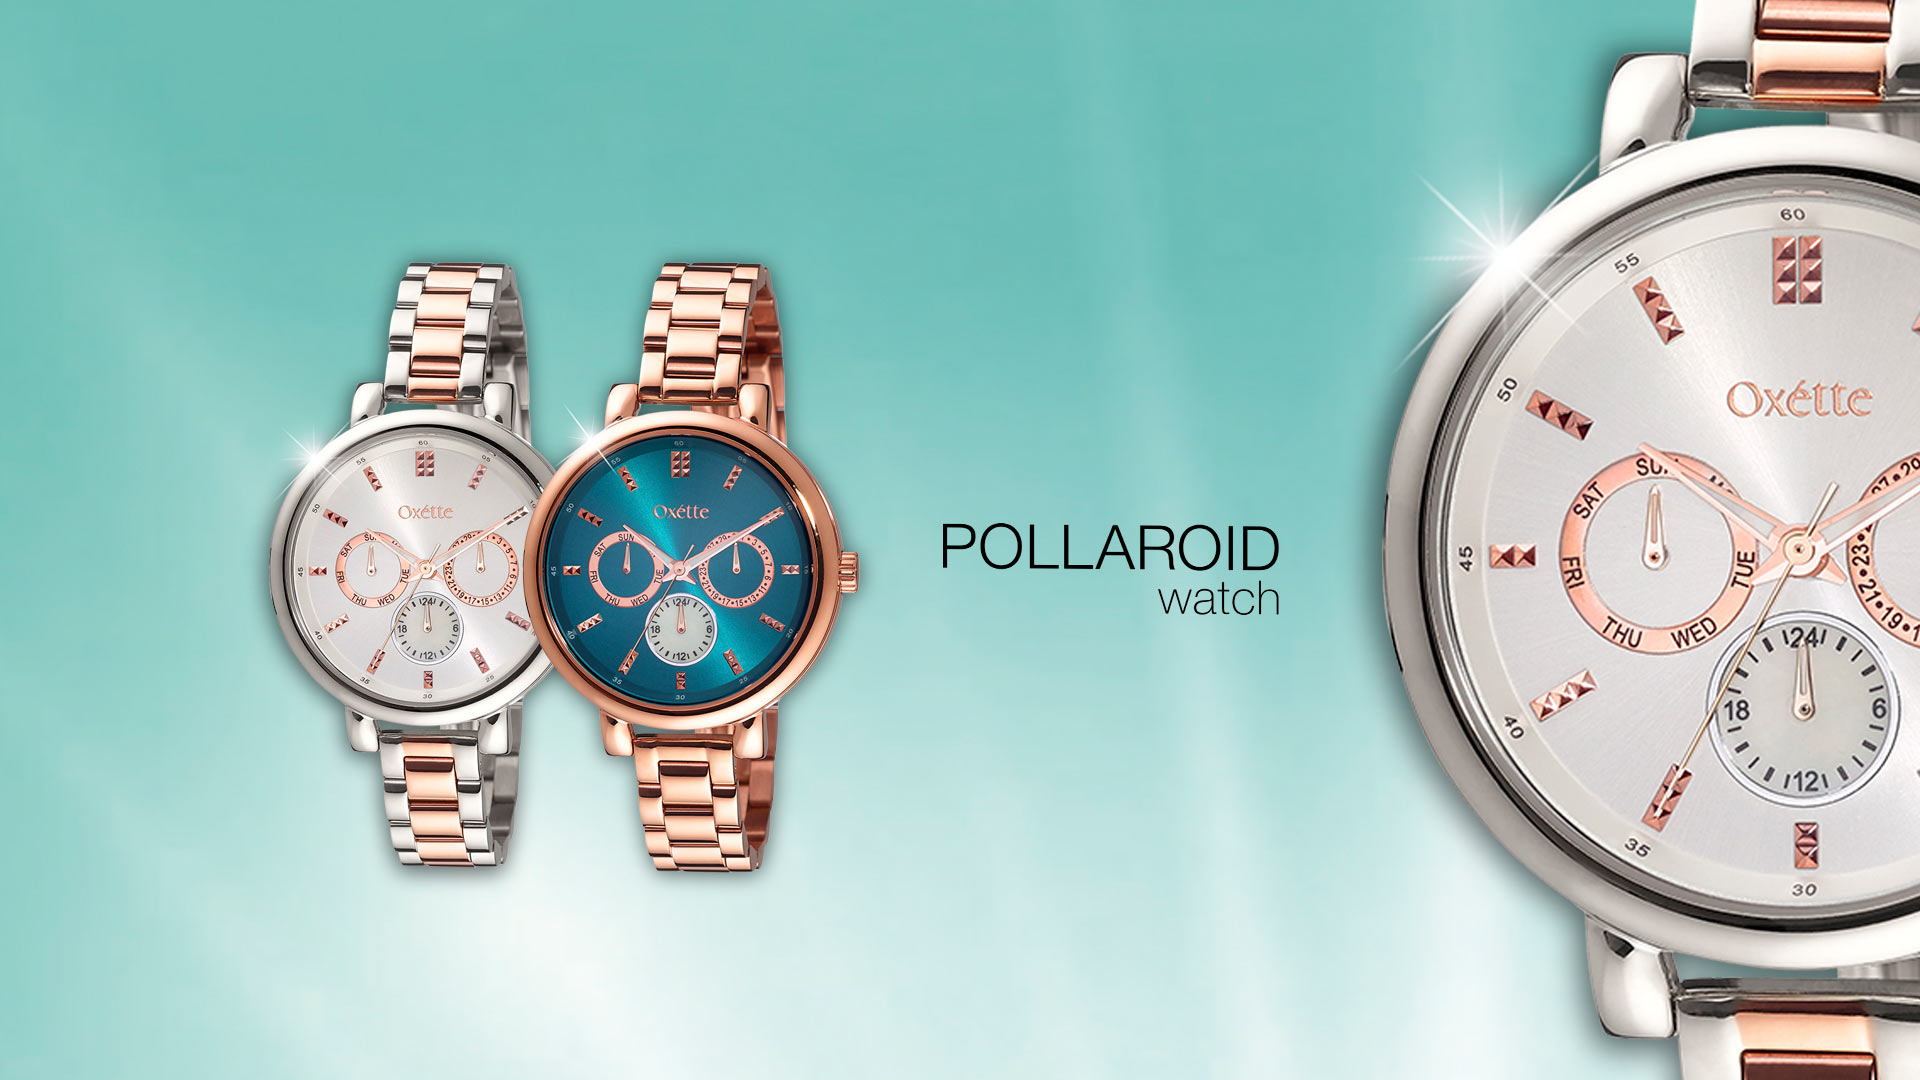 Pollaroid Watch - Oxette